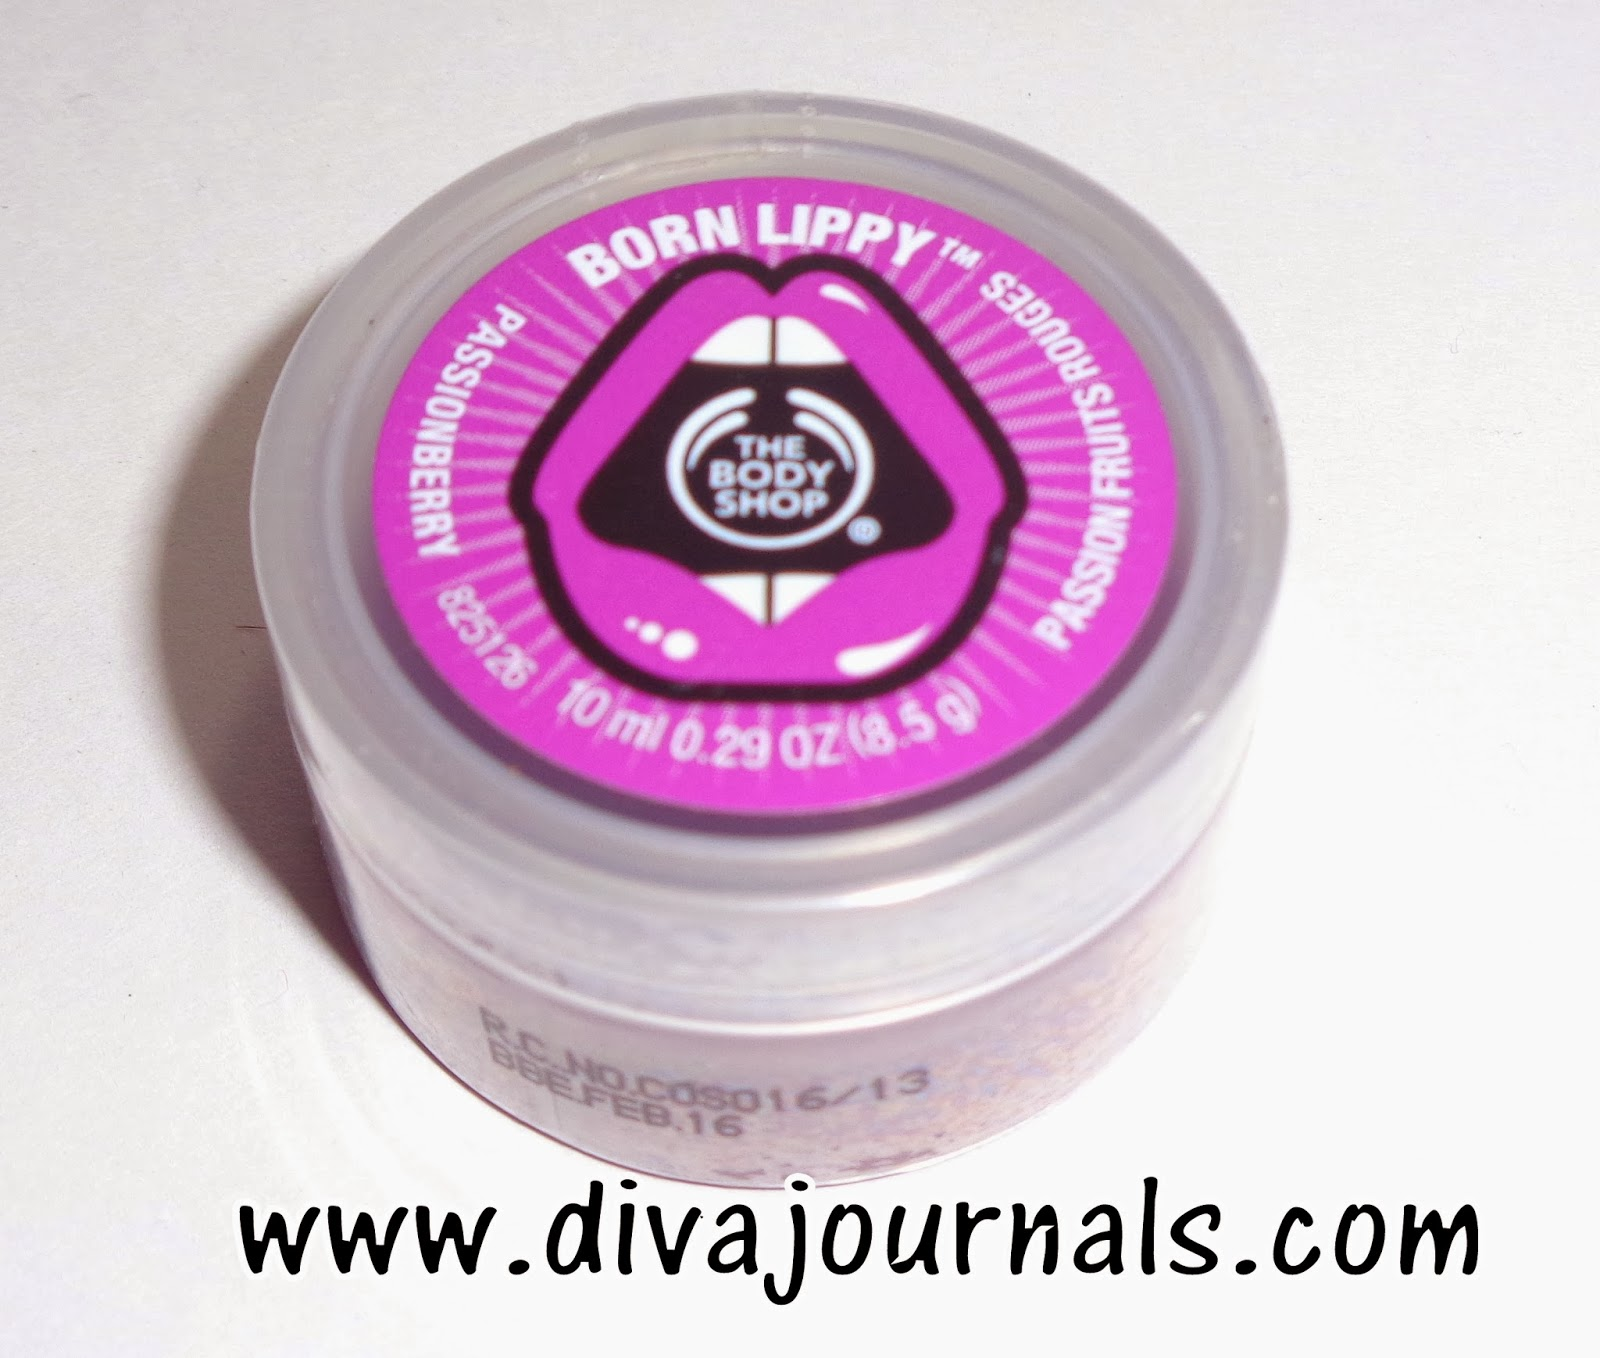 The Body Shop Born Lippy Butter